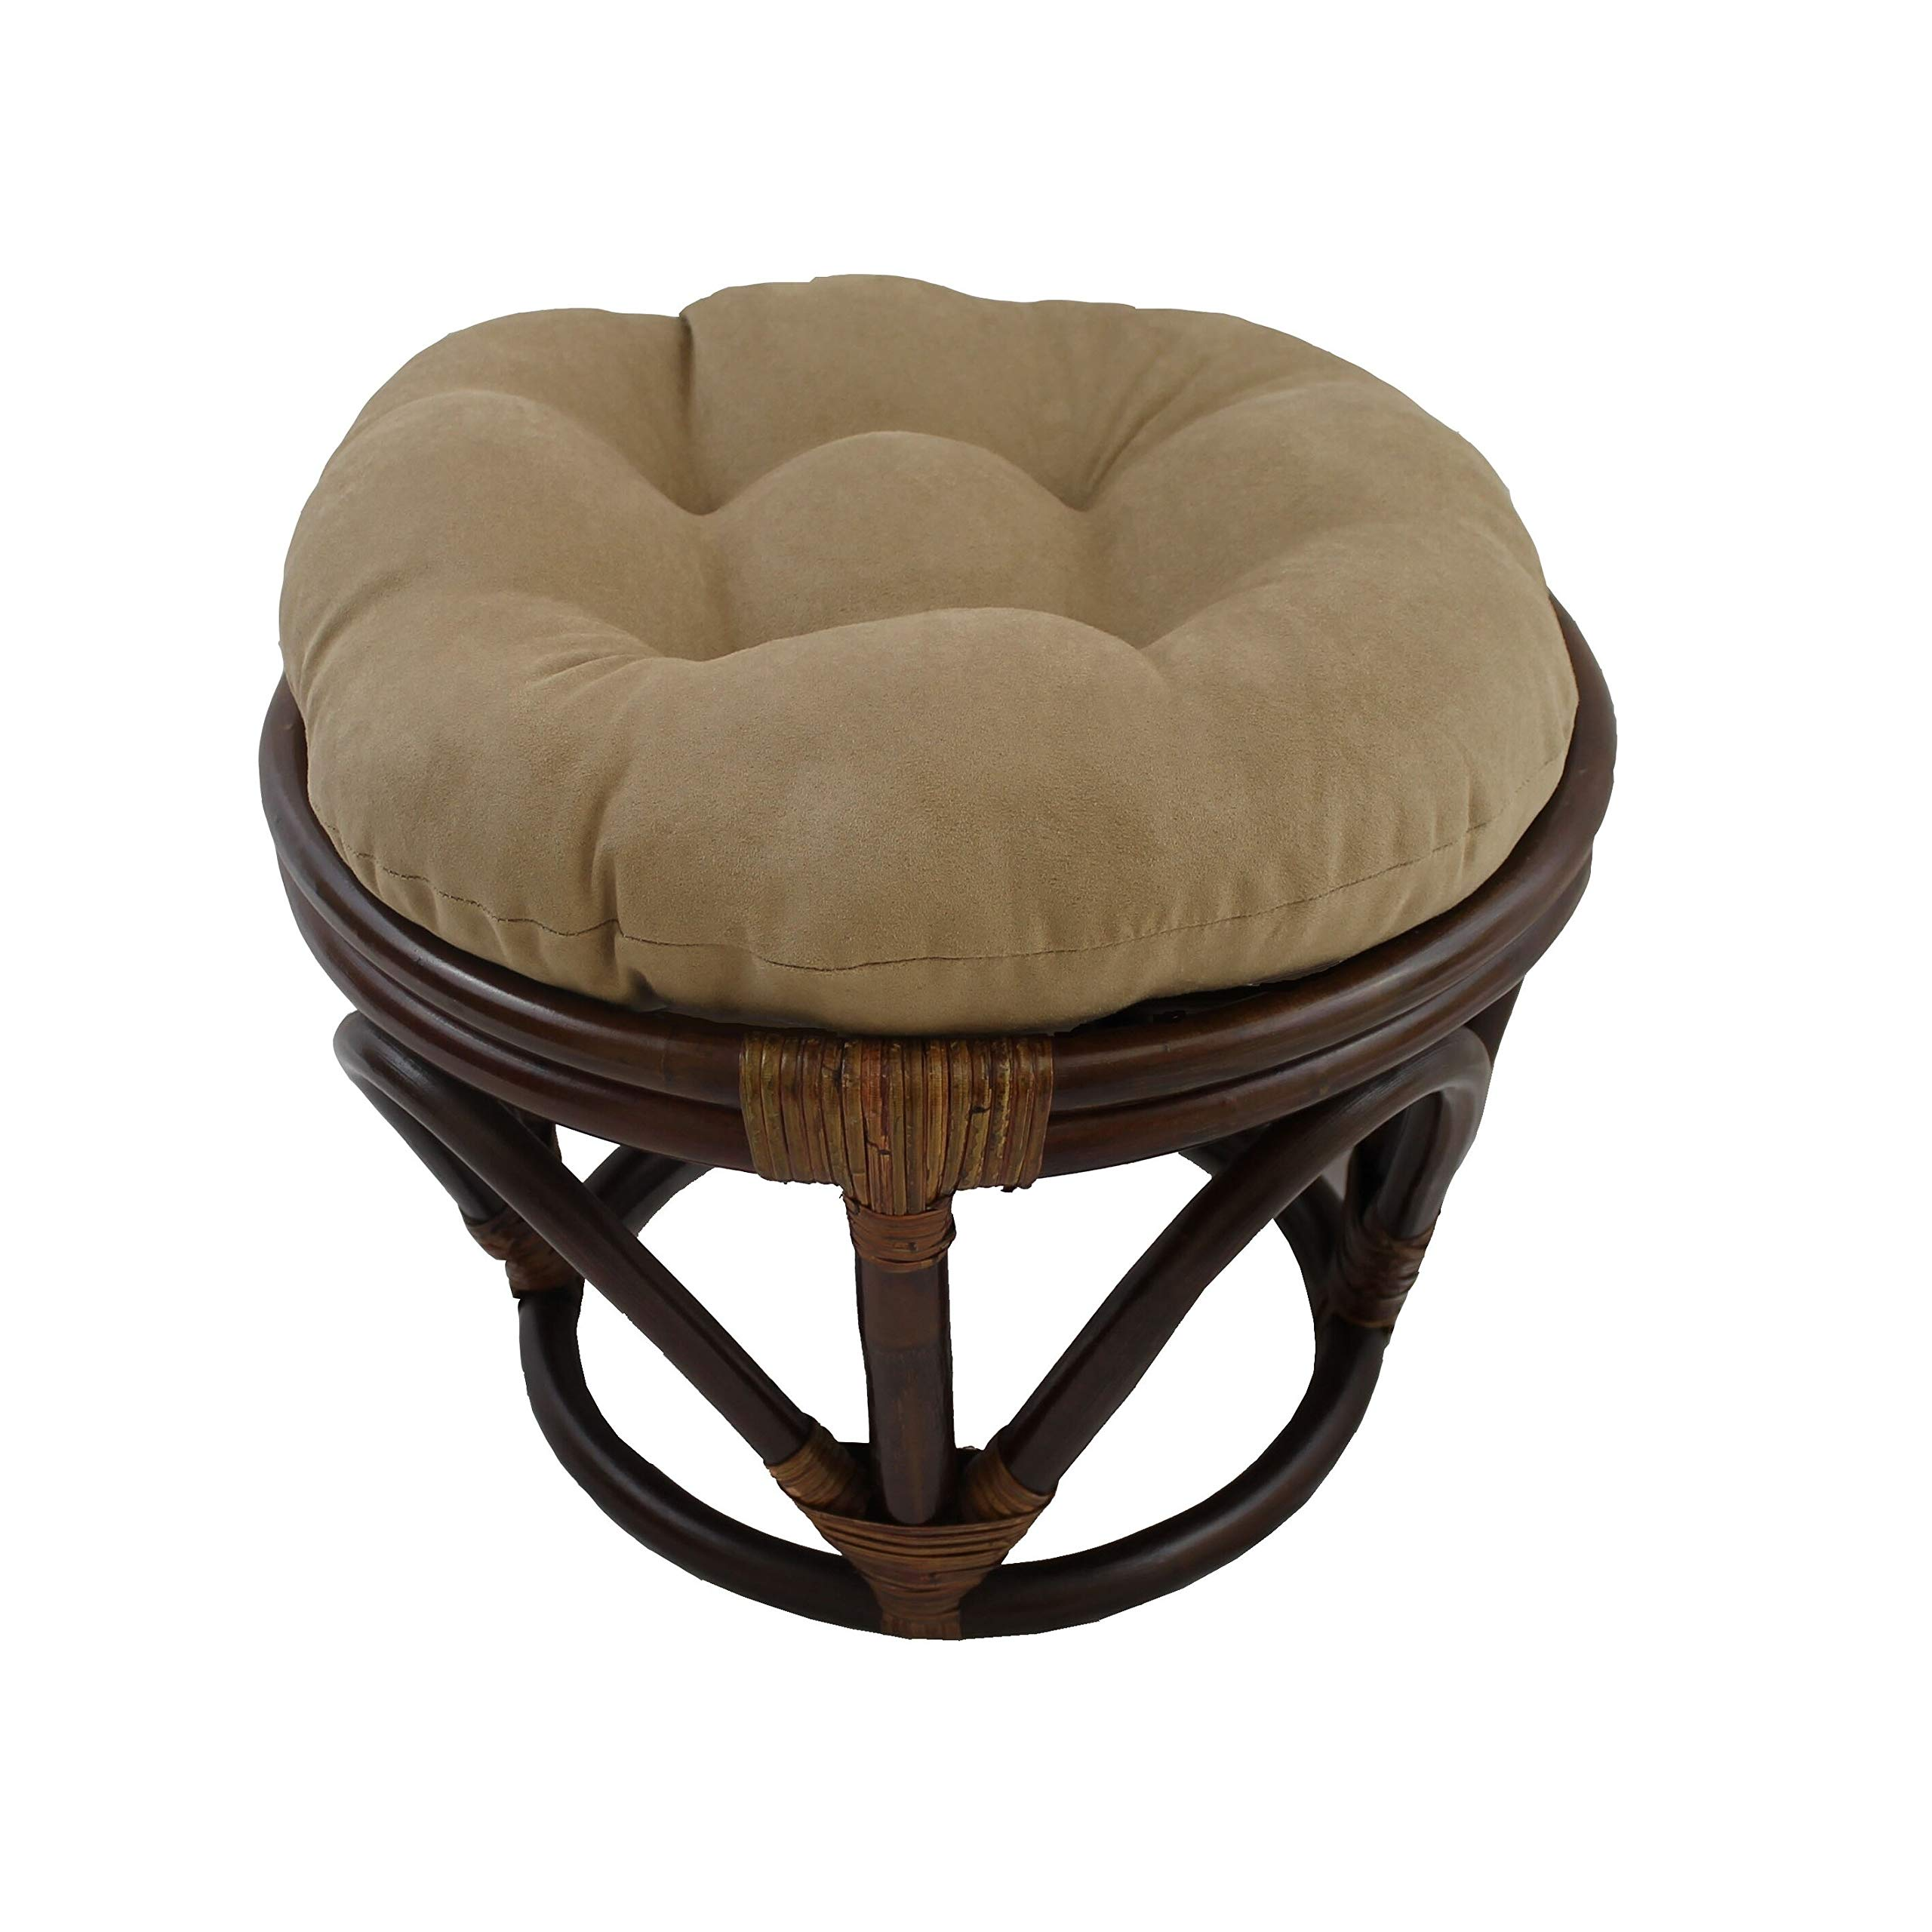 International Caravan Bali Papasan Footstool with Microsuede Cushion Tan by International Caravan